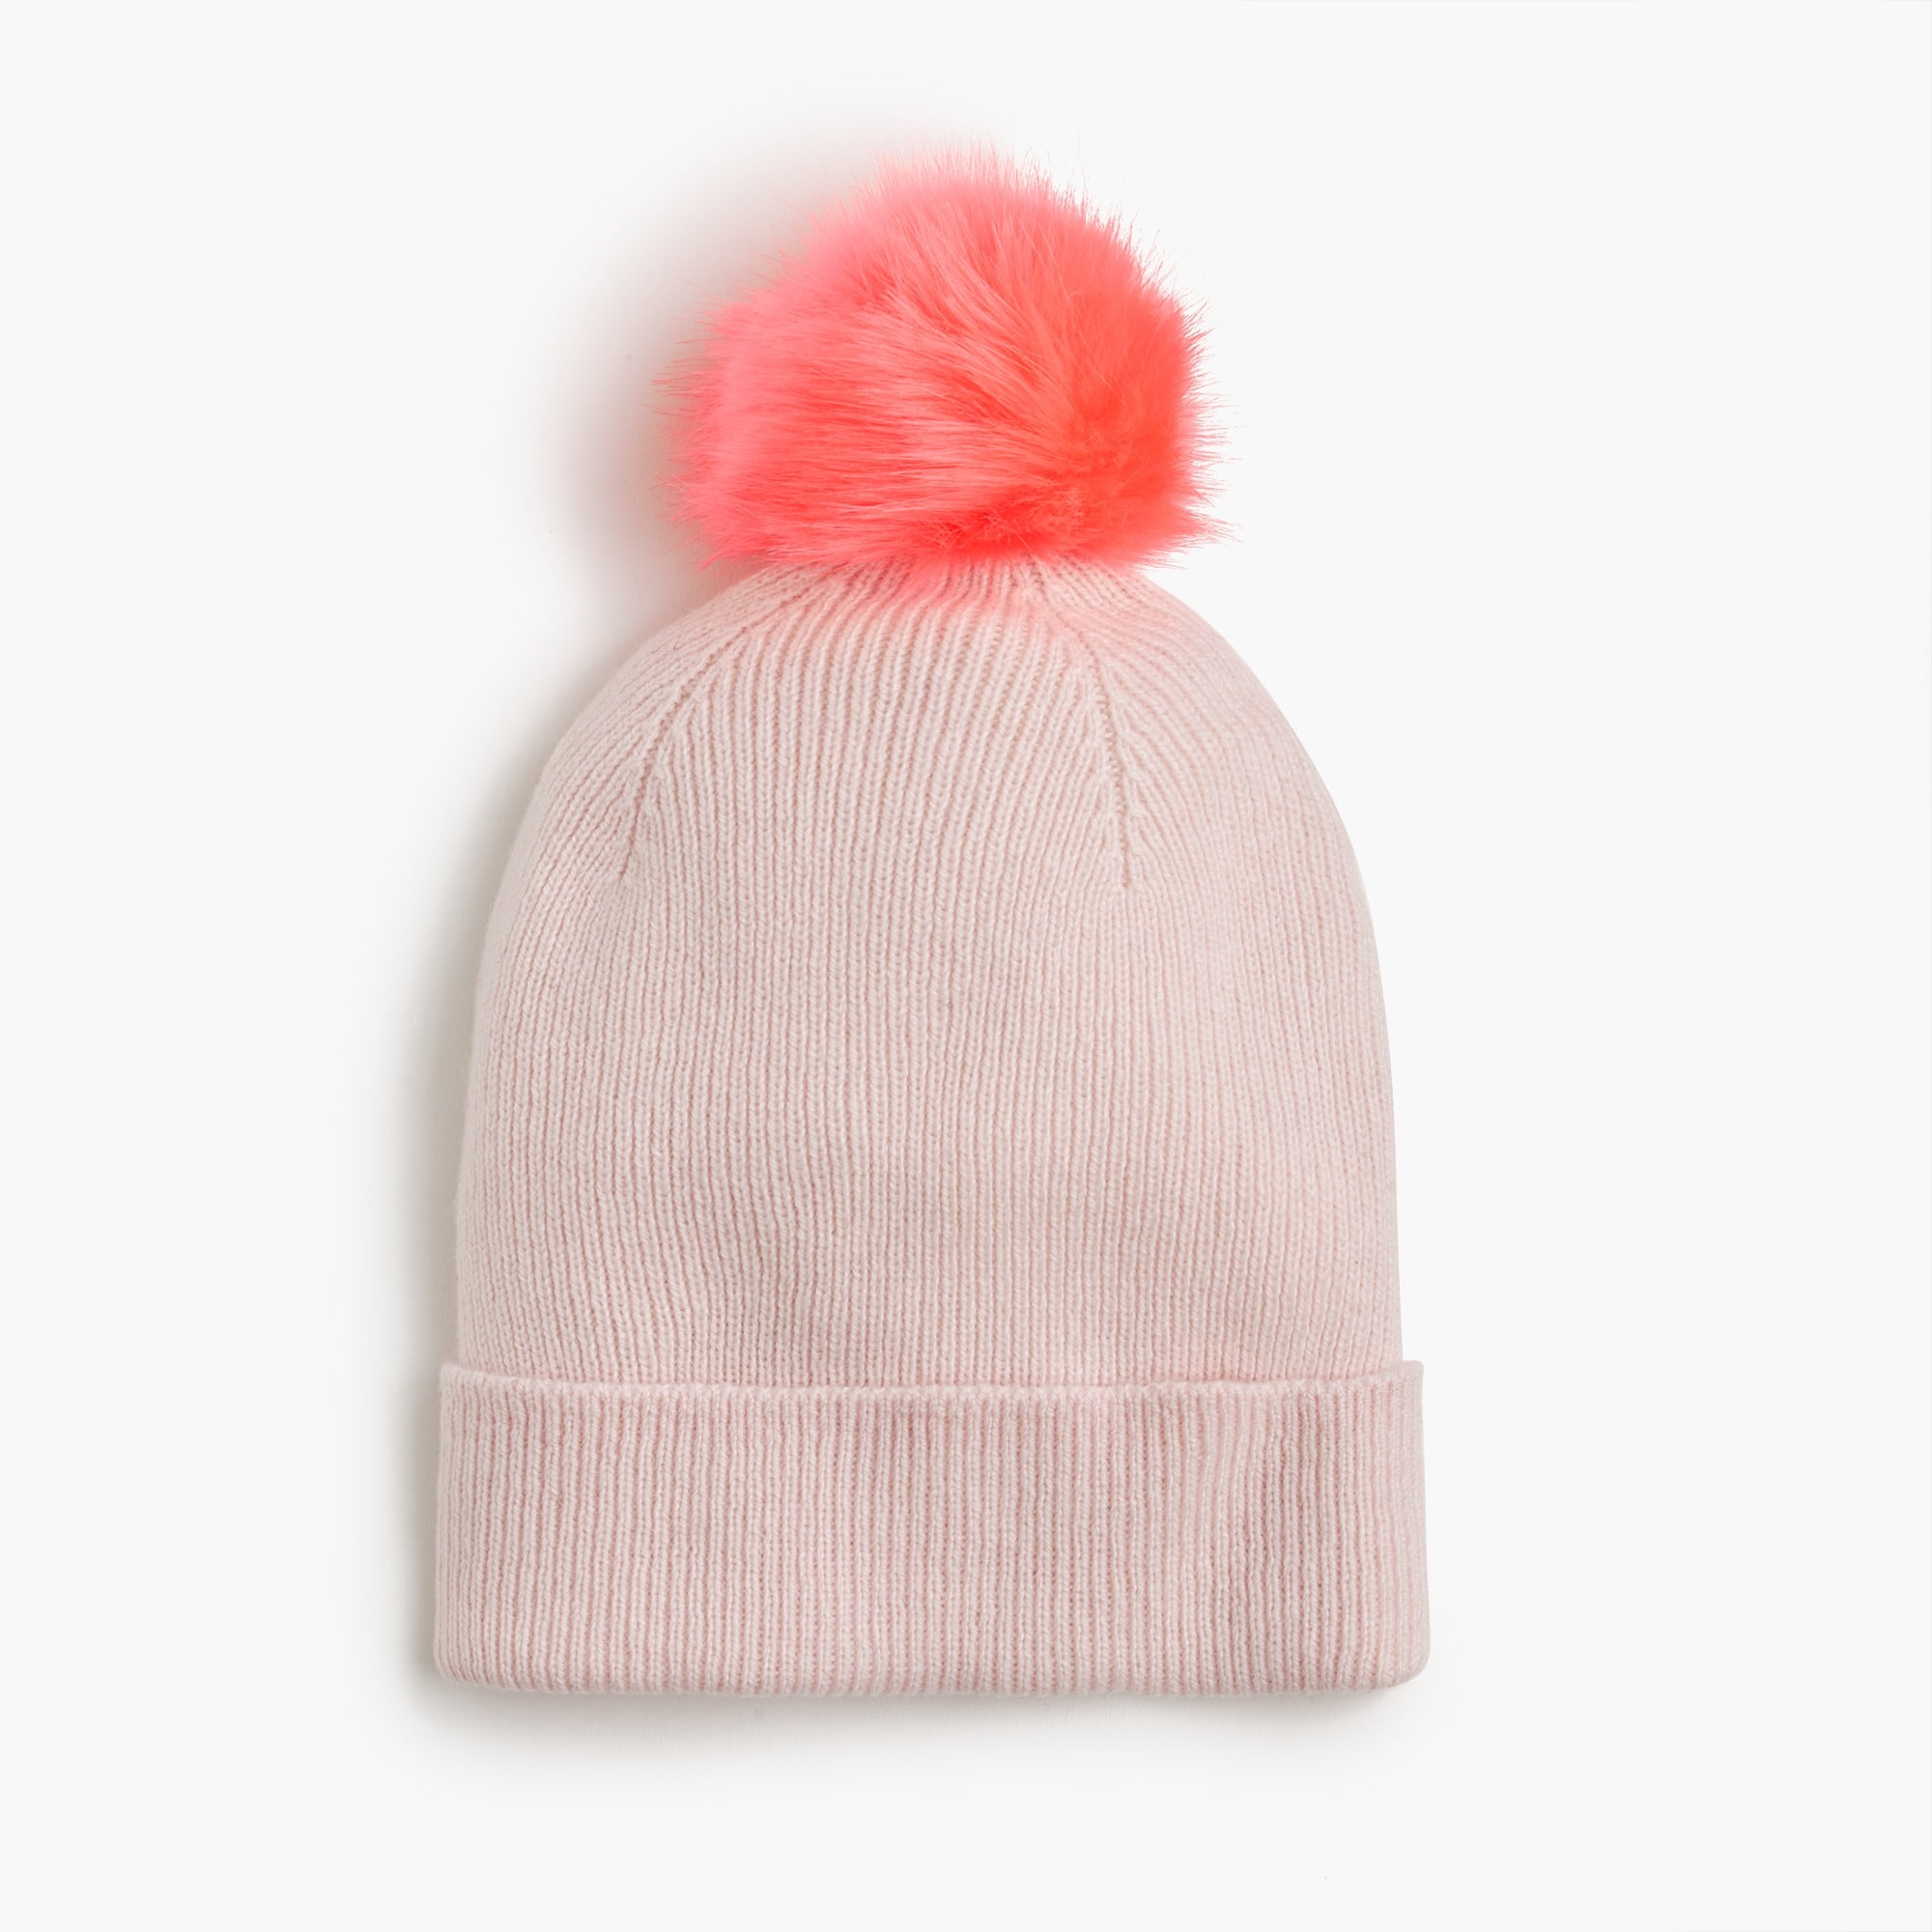 Girls' knit hat with furry pom-pom